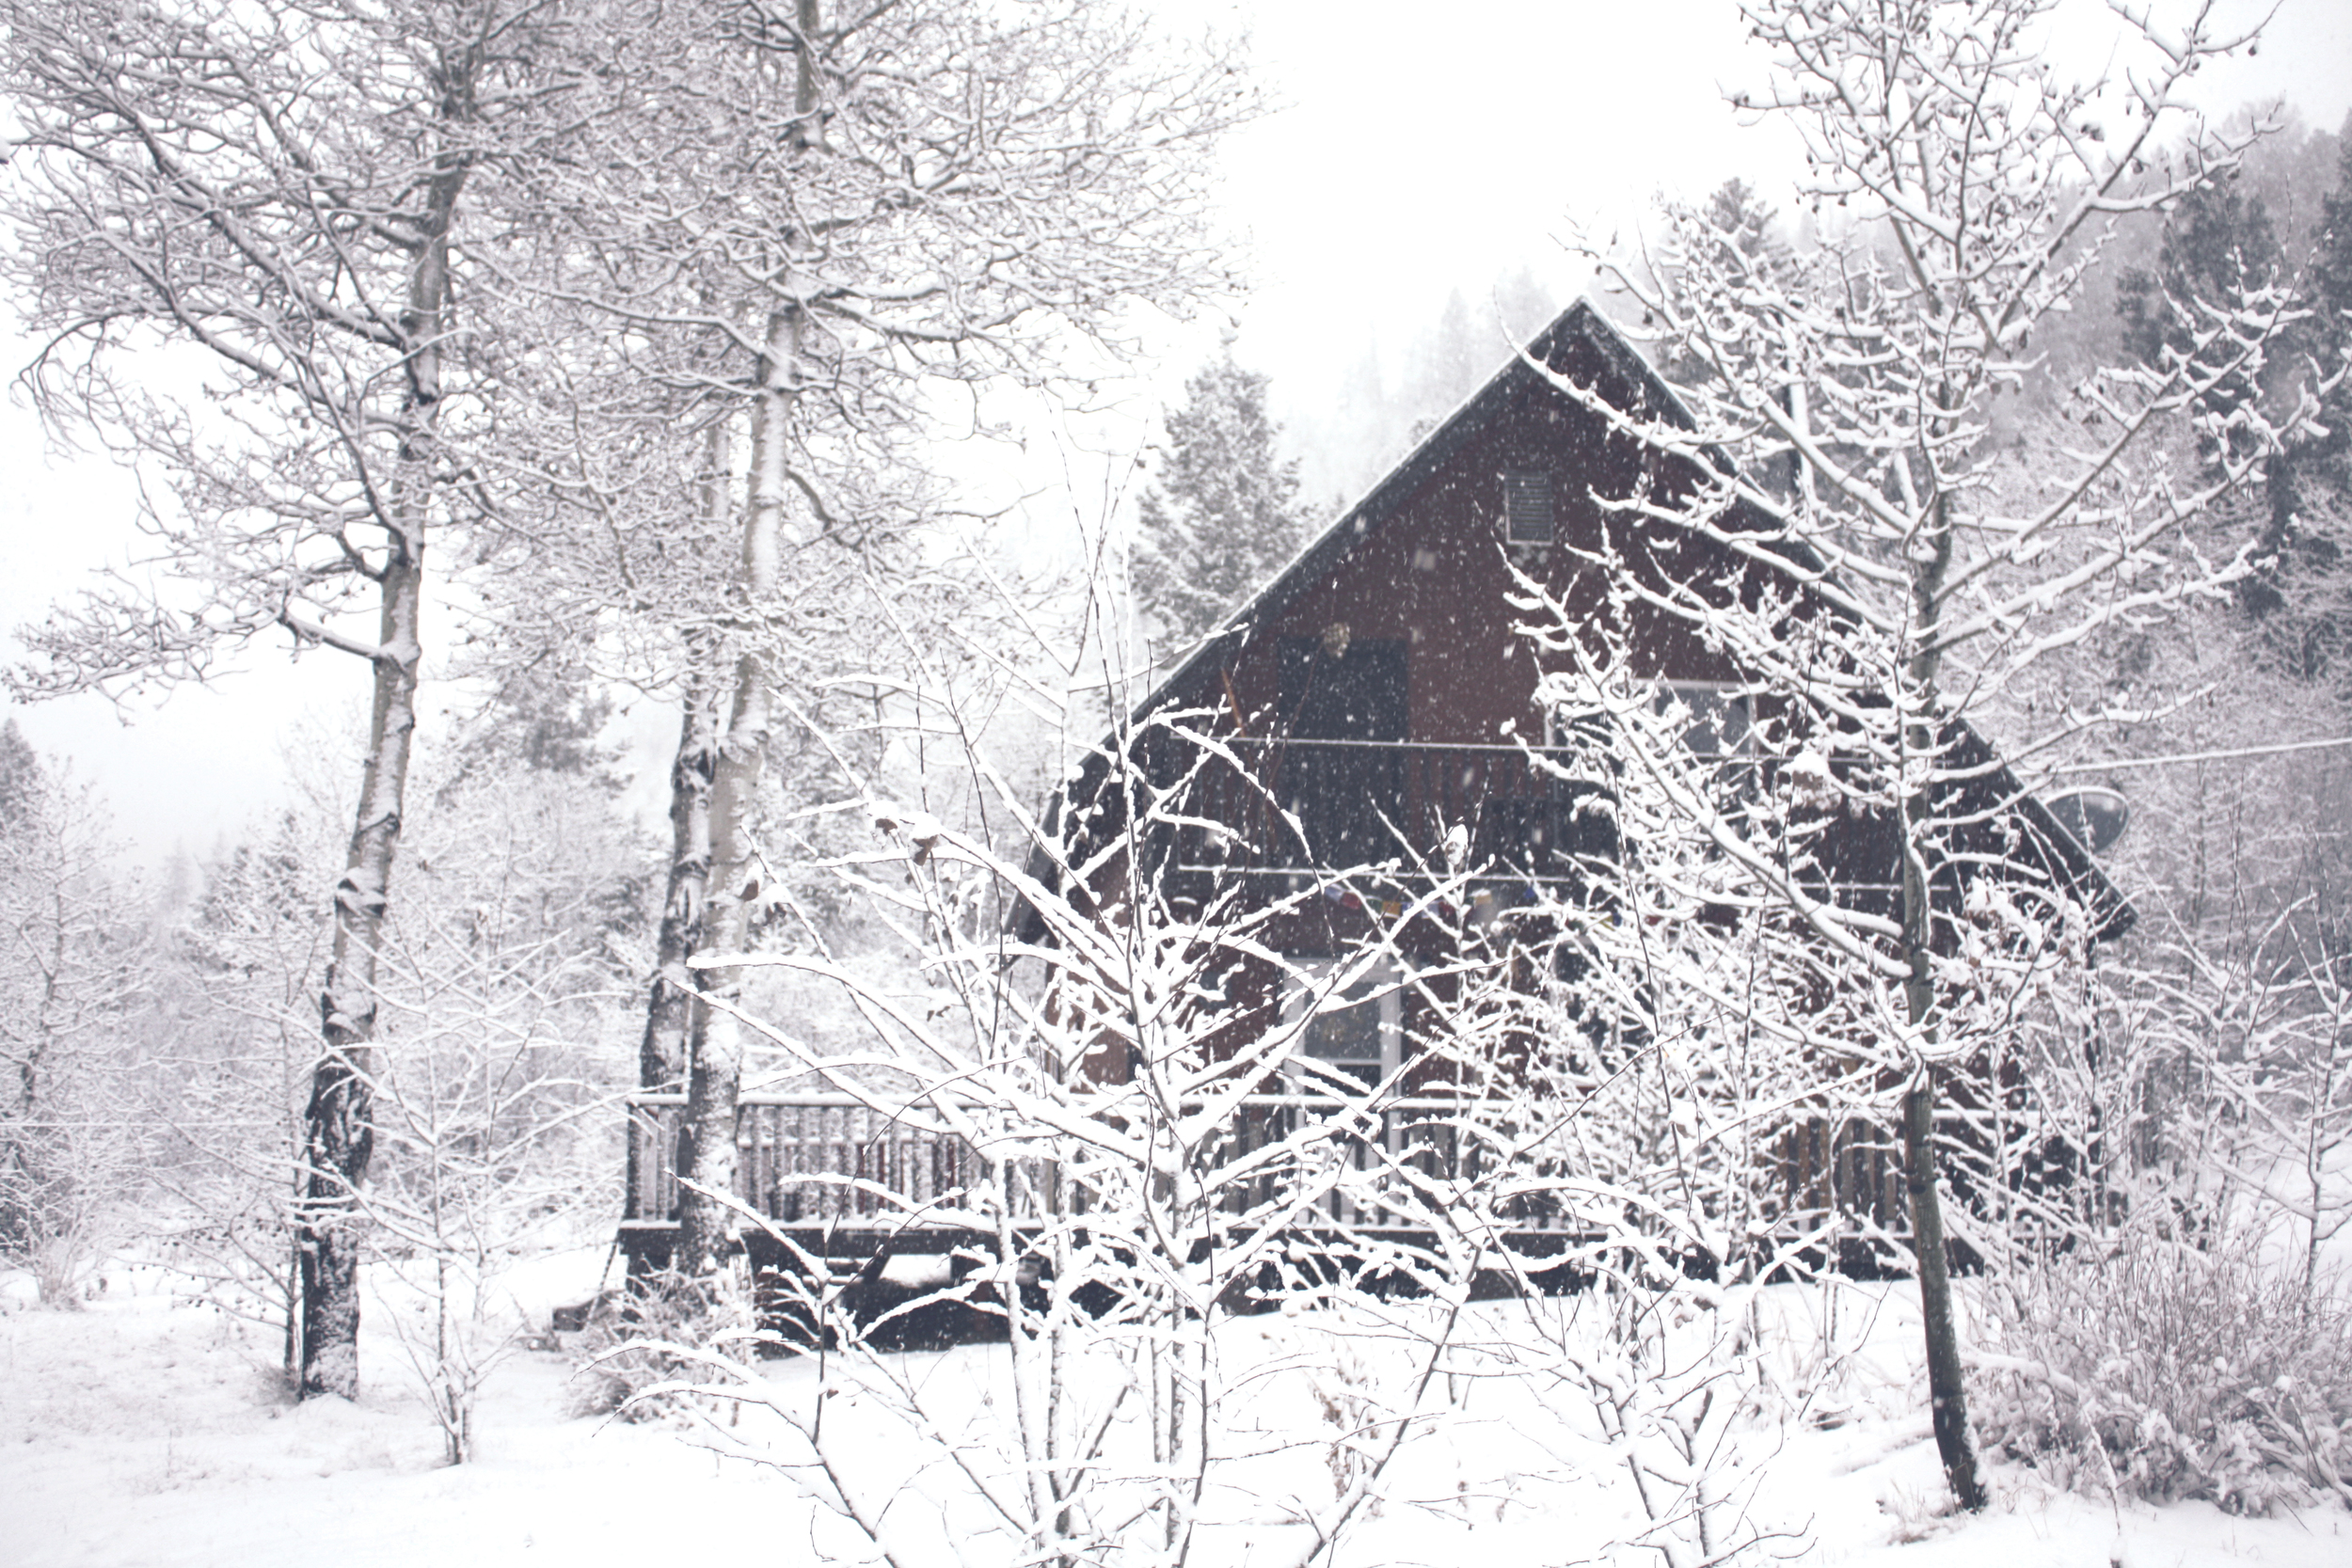 Winter at the Cabin